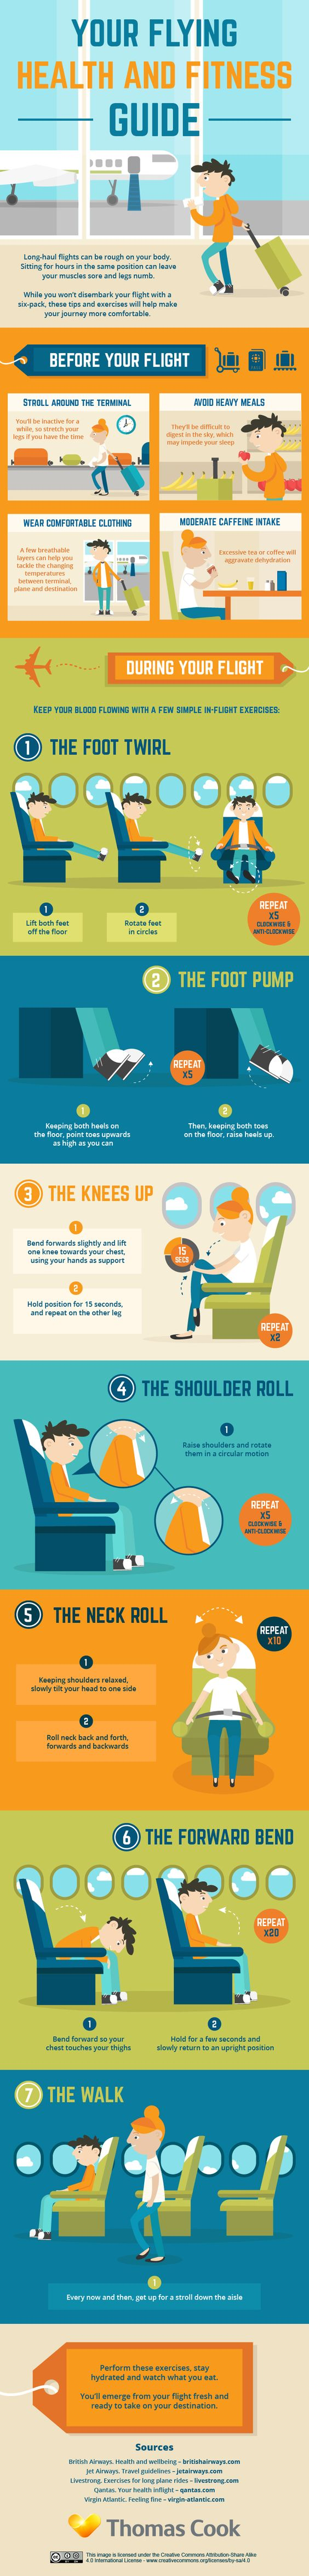 Long haul flights can be really tough on you if you don't approach them the right way. To keep your cramped body from getting too stiff at 35,000 feet, this graphic has seven exercises you can do on the plane to loosen up.